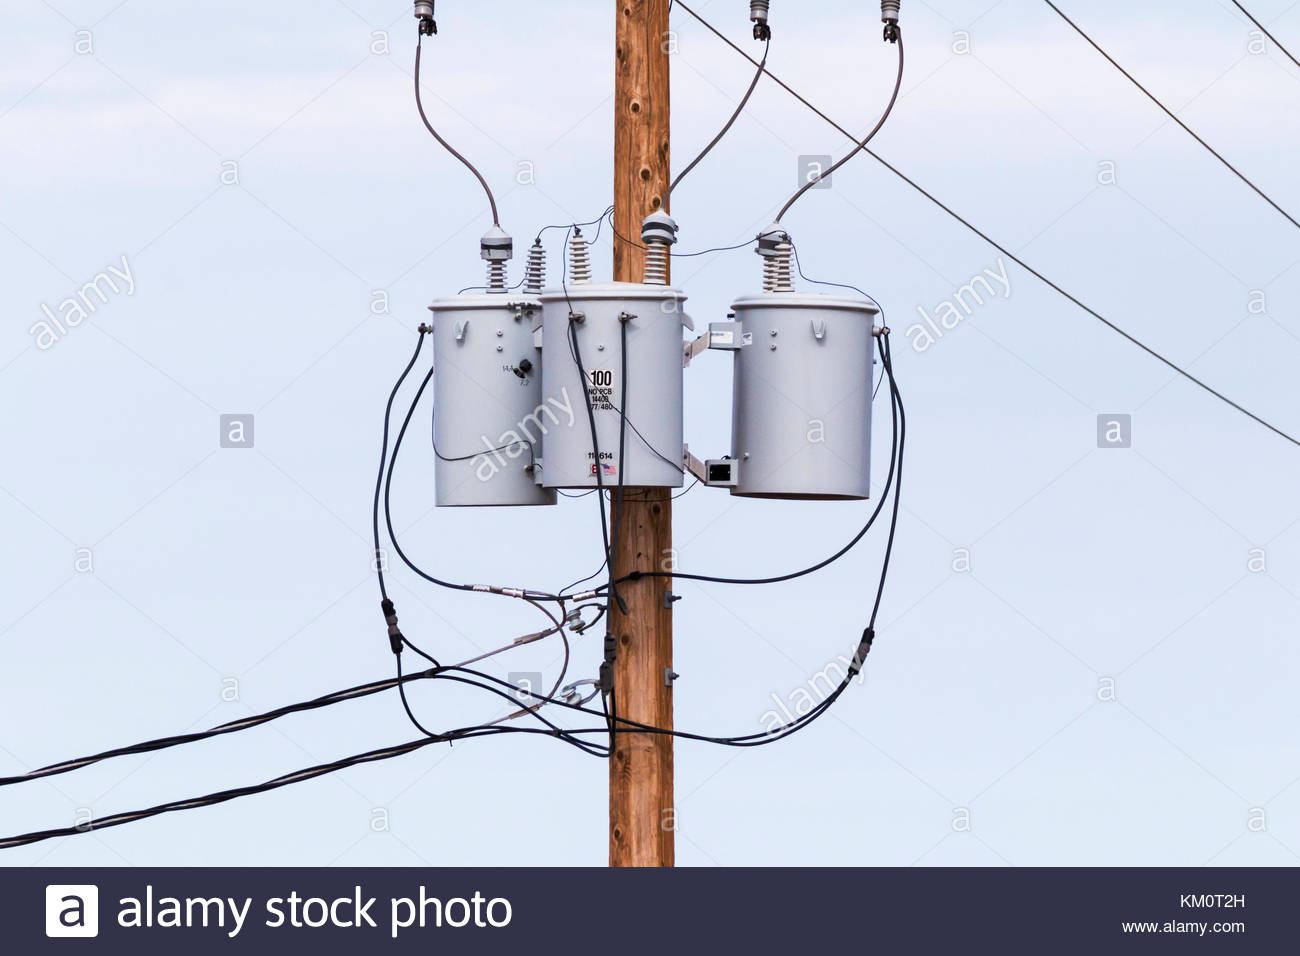 Electric Power Pole Transformer Stock Photos Electrical Wiring Residential Usa Three Phase Transformers On In Arizona Image